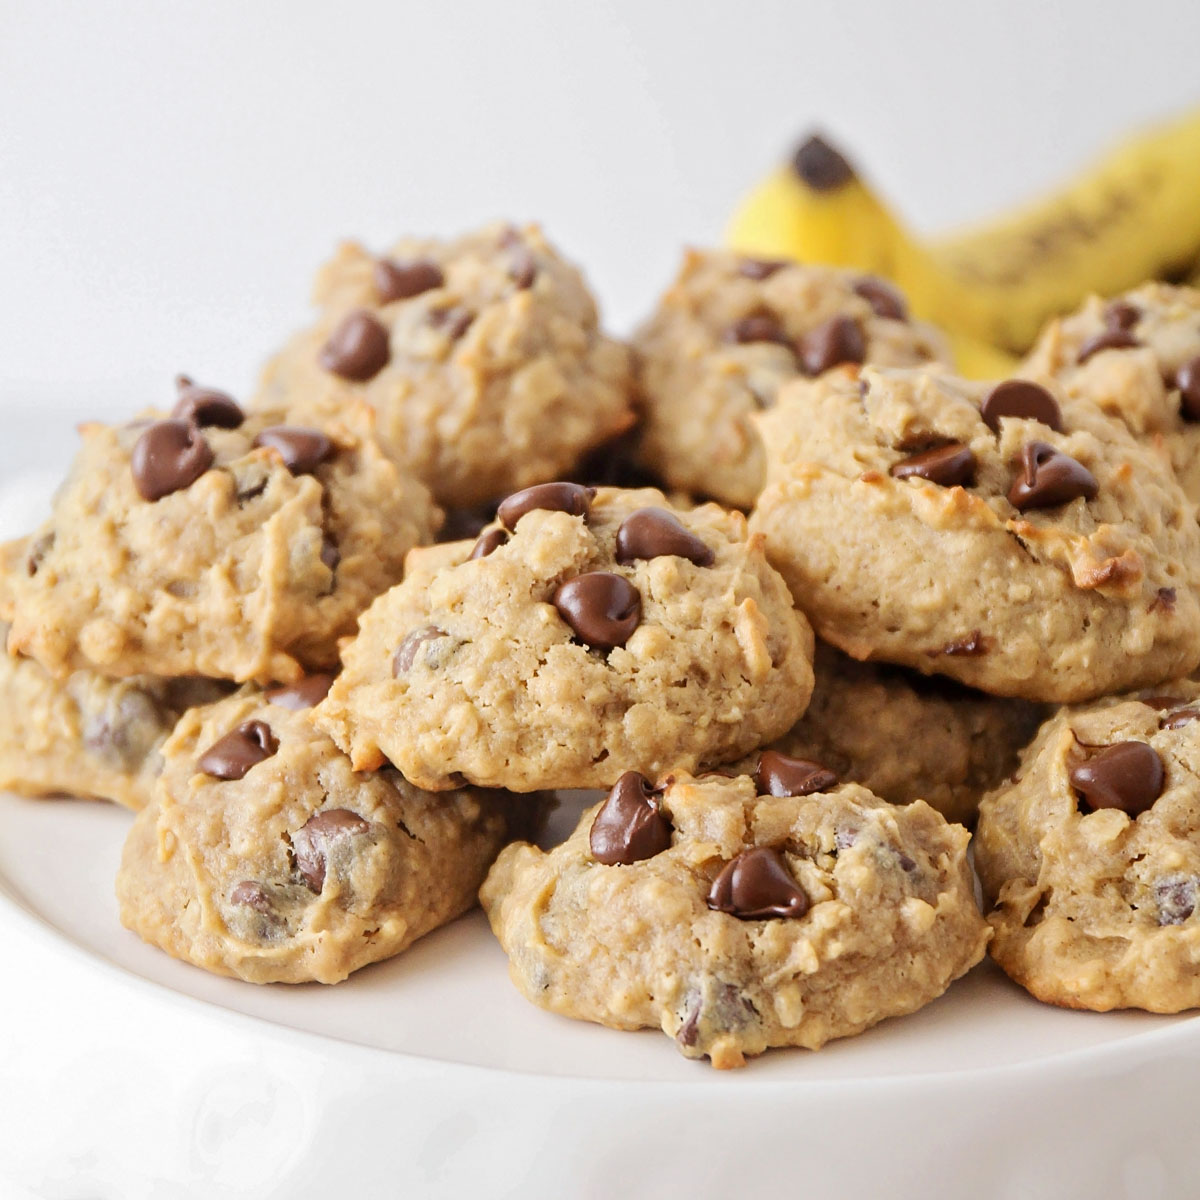 Peanut Butter Banana Cookies stacked on a white platter